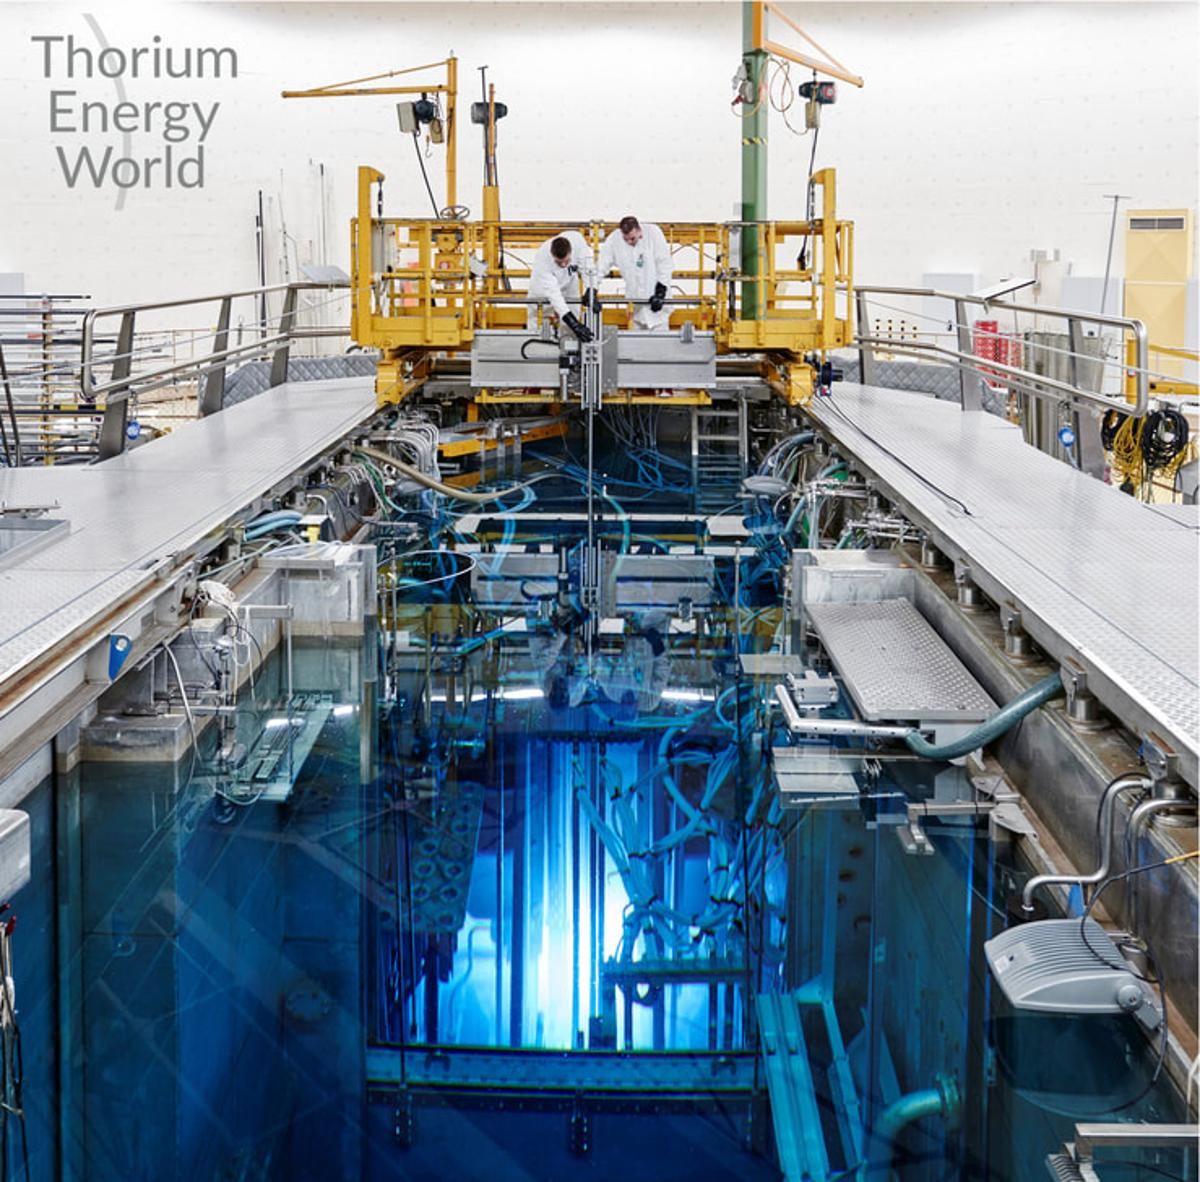 This is the first thorium salt experiment since the 1970s